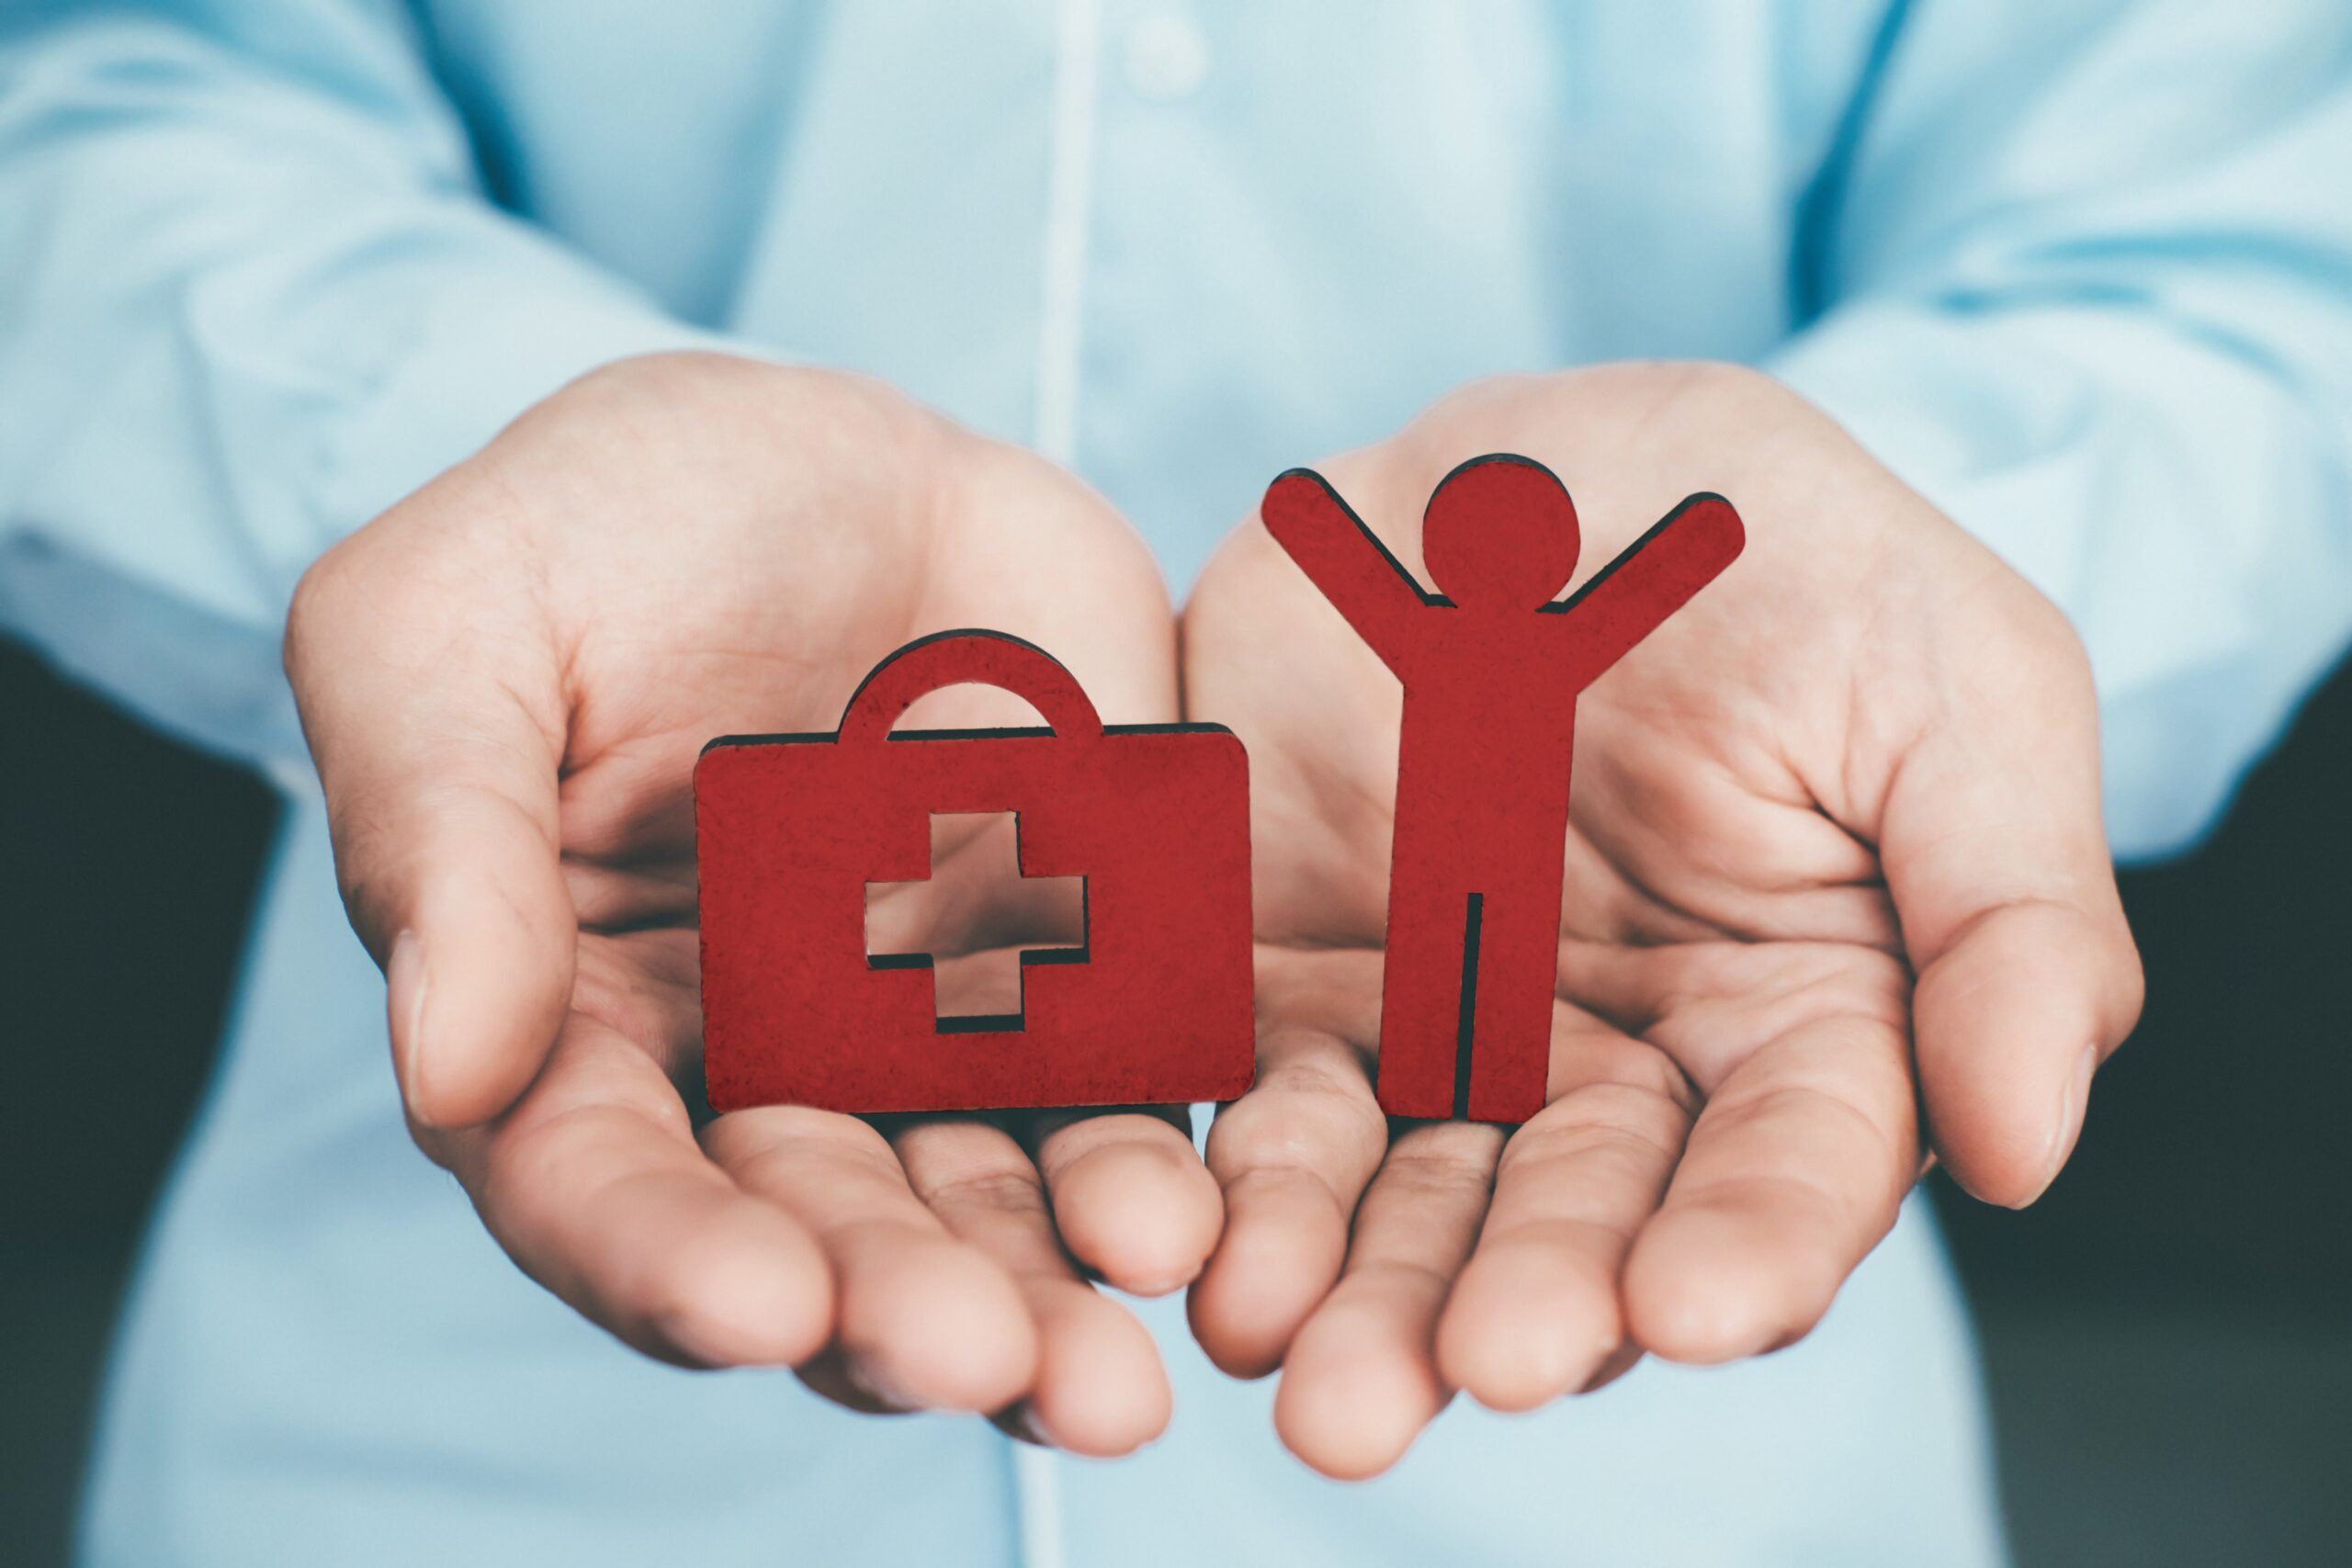 Where To Find The Best Options During Open Enrollment